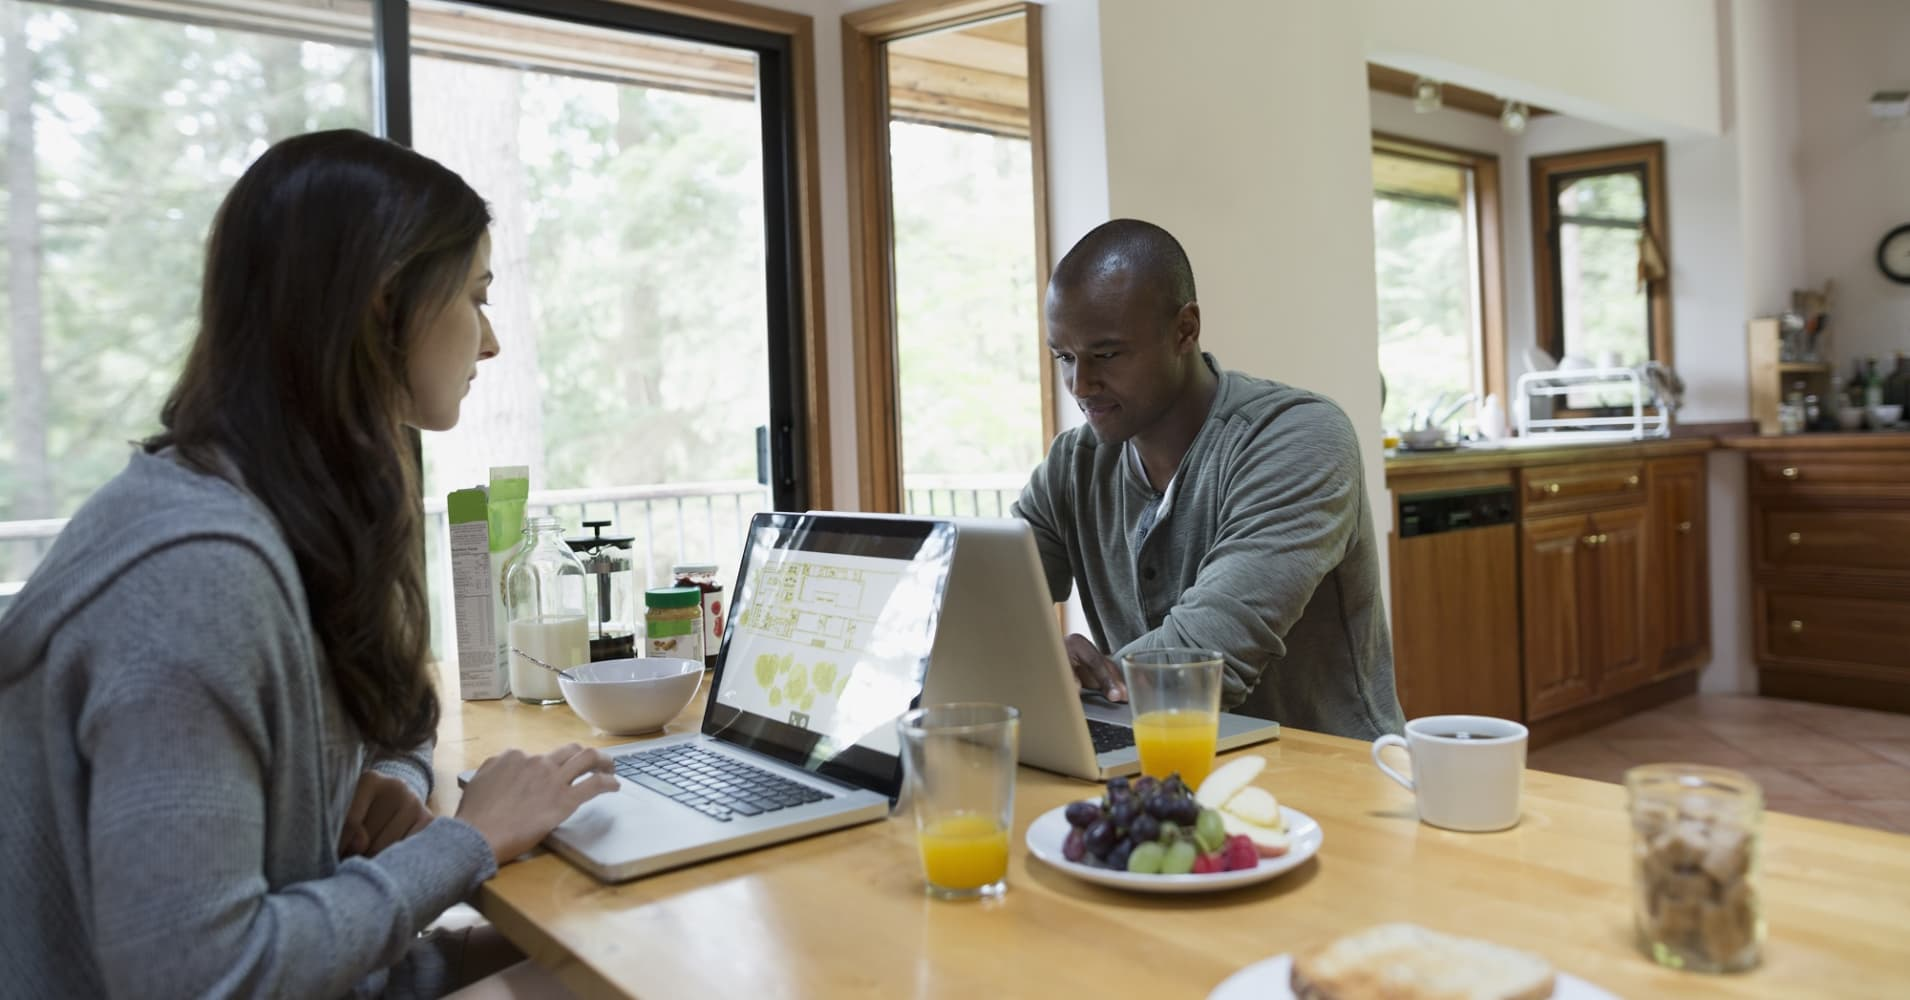 Everything you need to know about how to work from home and get stuff done